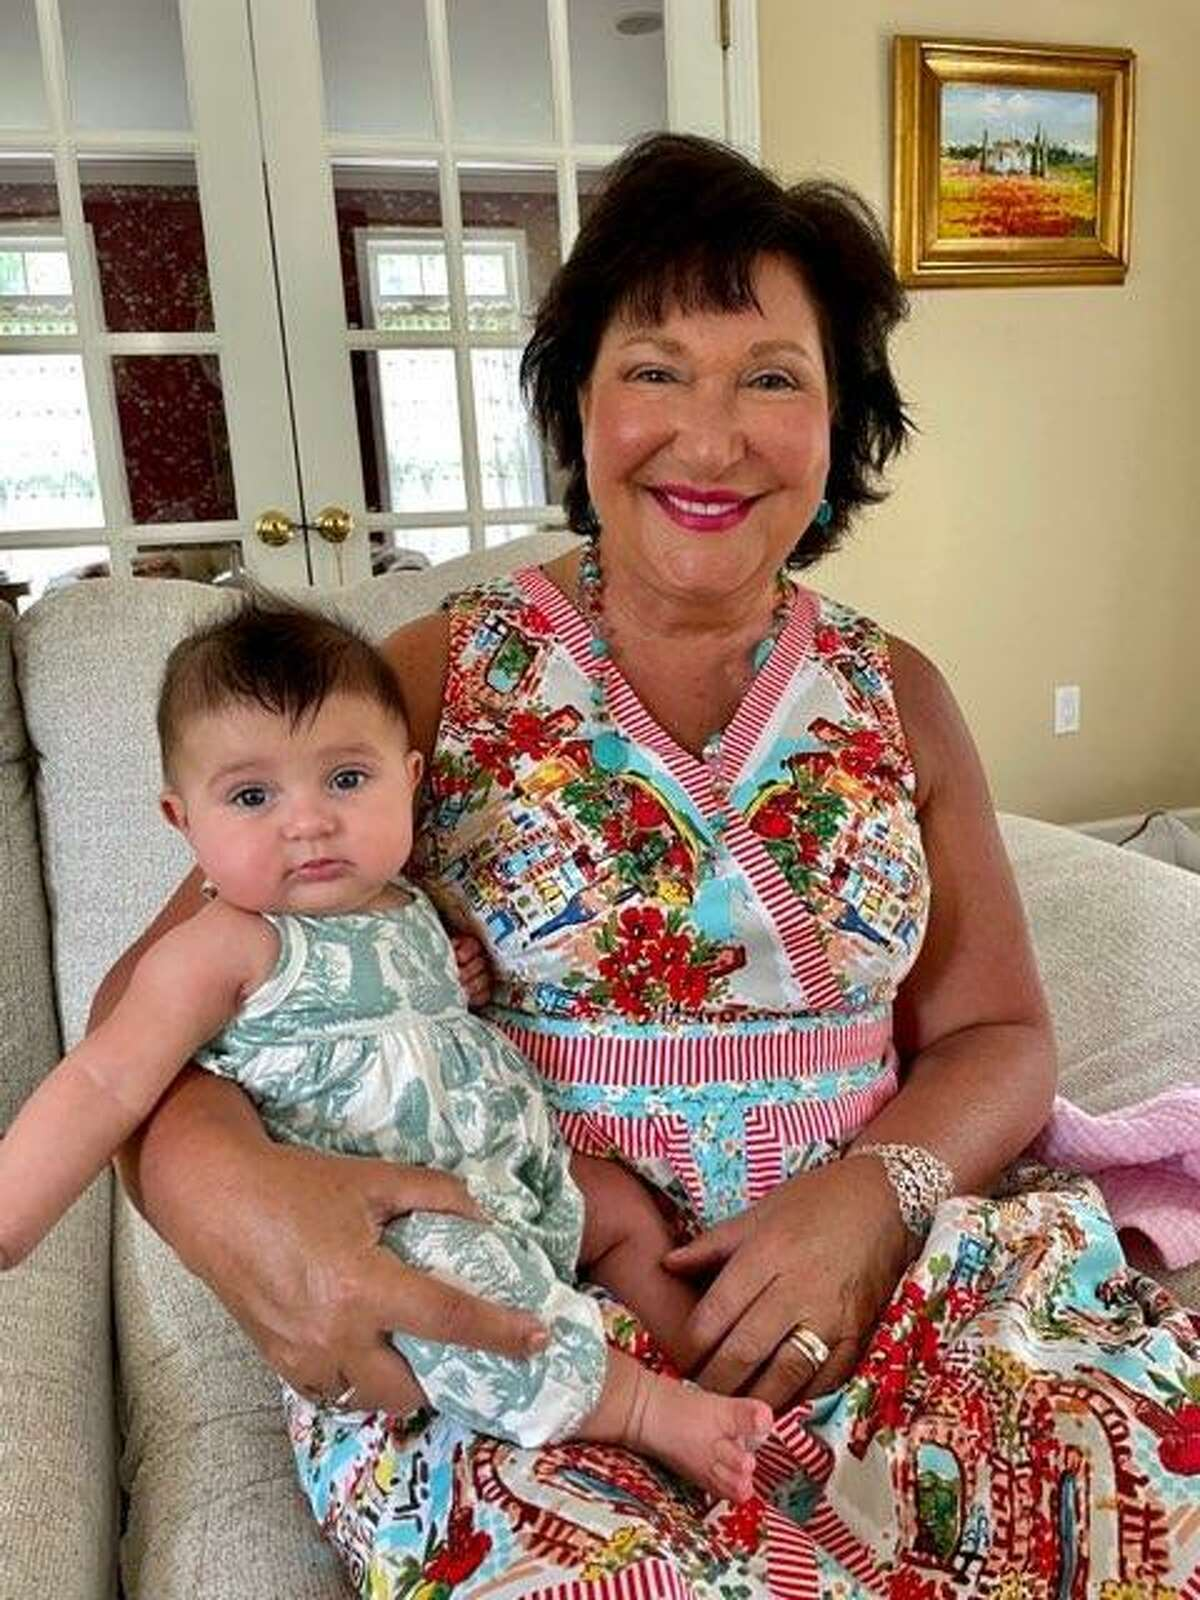 """Karen Leonetti of Madison with her granddaughter, Alessia, who lives in New Jersey. Leonetti has started a Facebook group, """"Karen and Pete's Wooster Street Family,"""" that emphasizes food and recipes, but also family."""